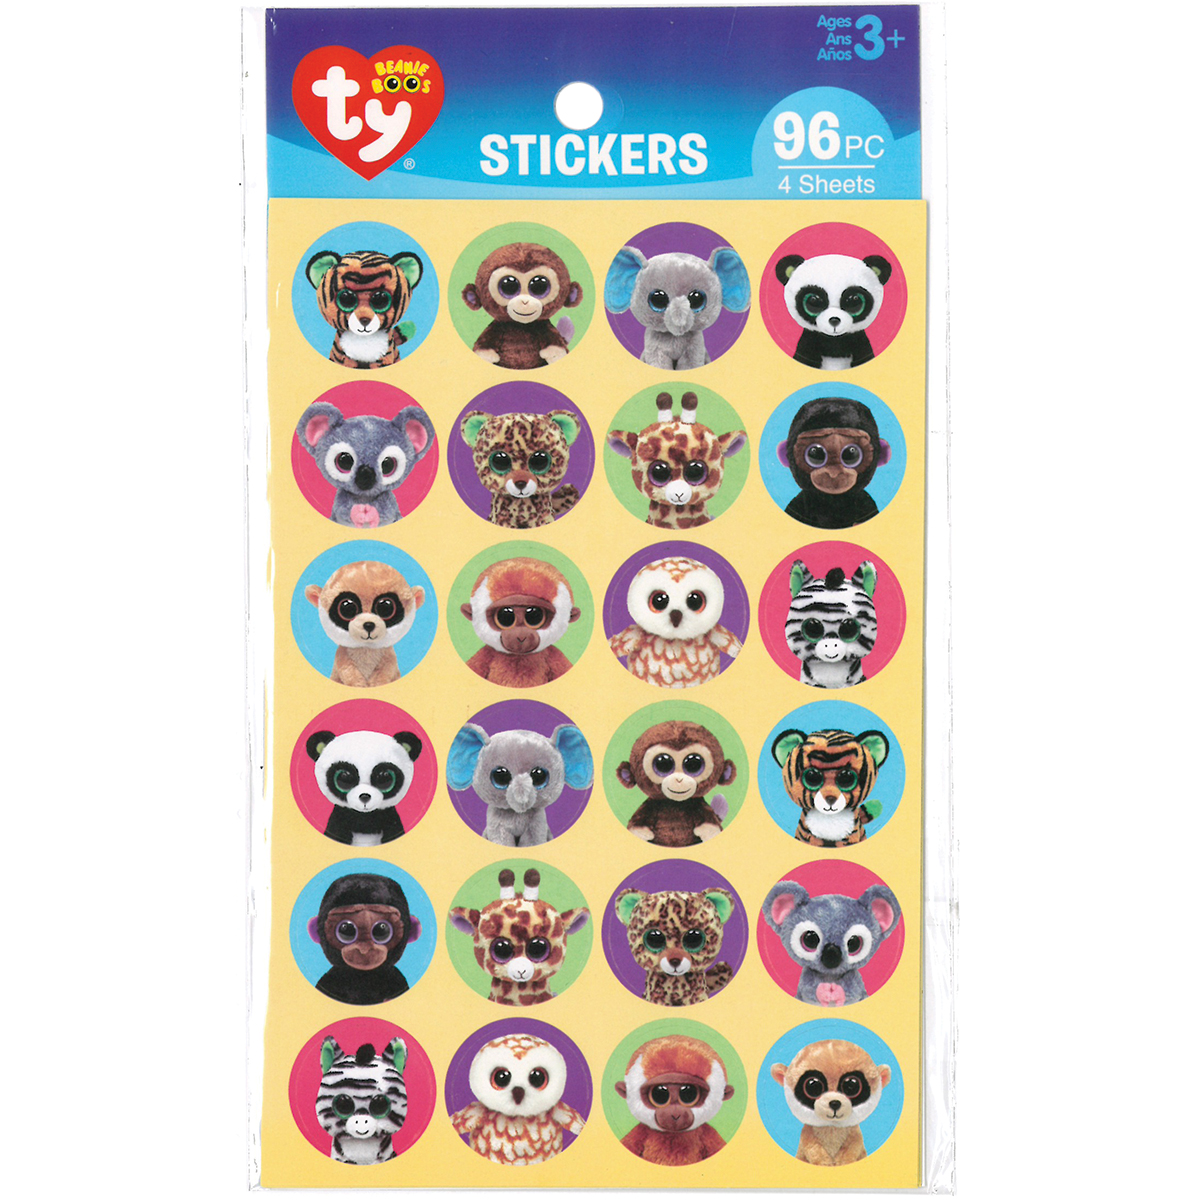 Beanie Boos Stickers 96 Pkg-Jungle - Walmart.com e9ceac9dcd9